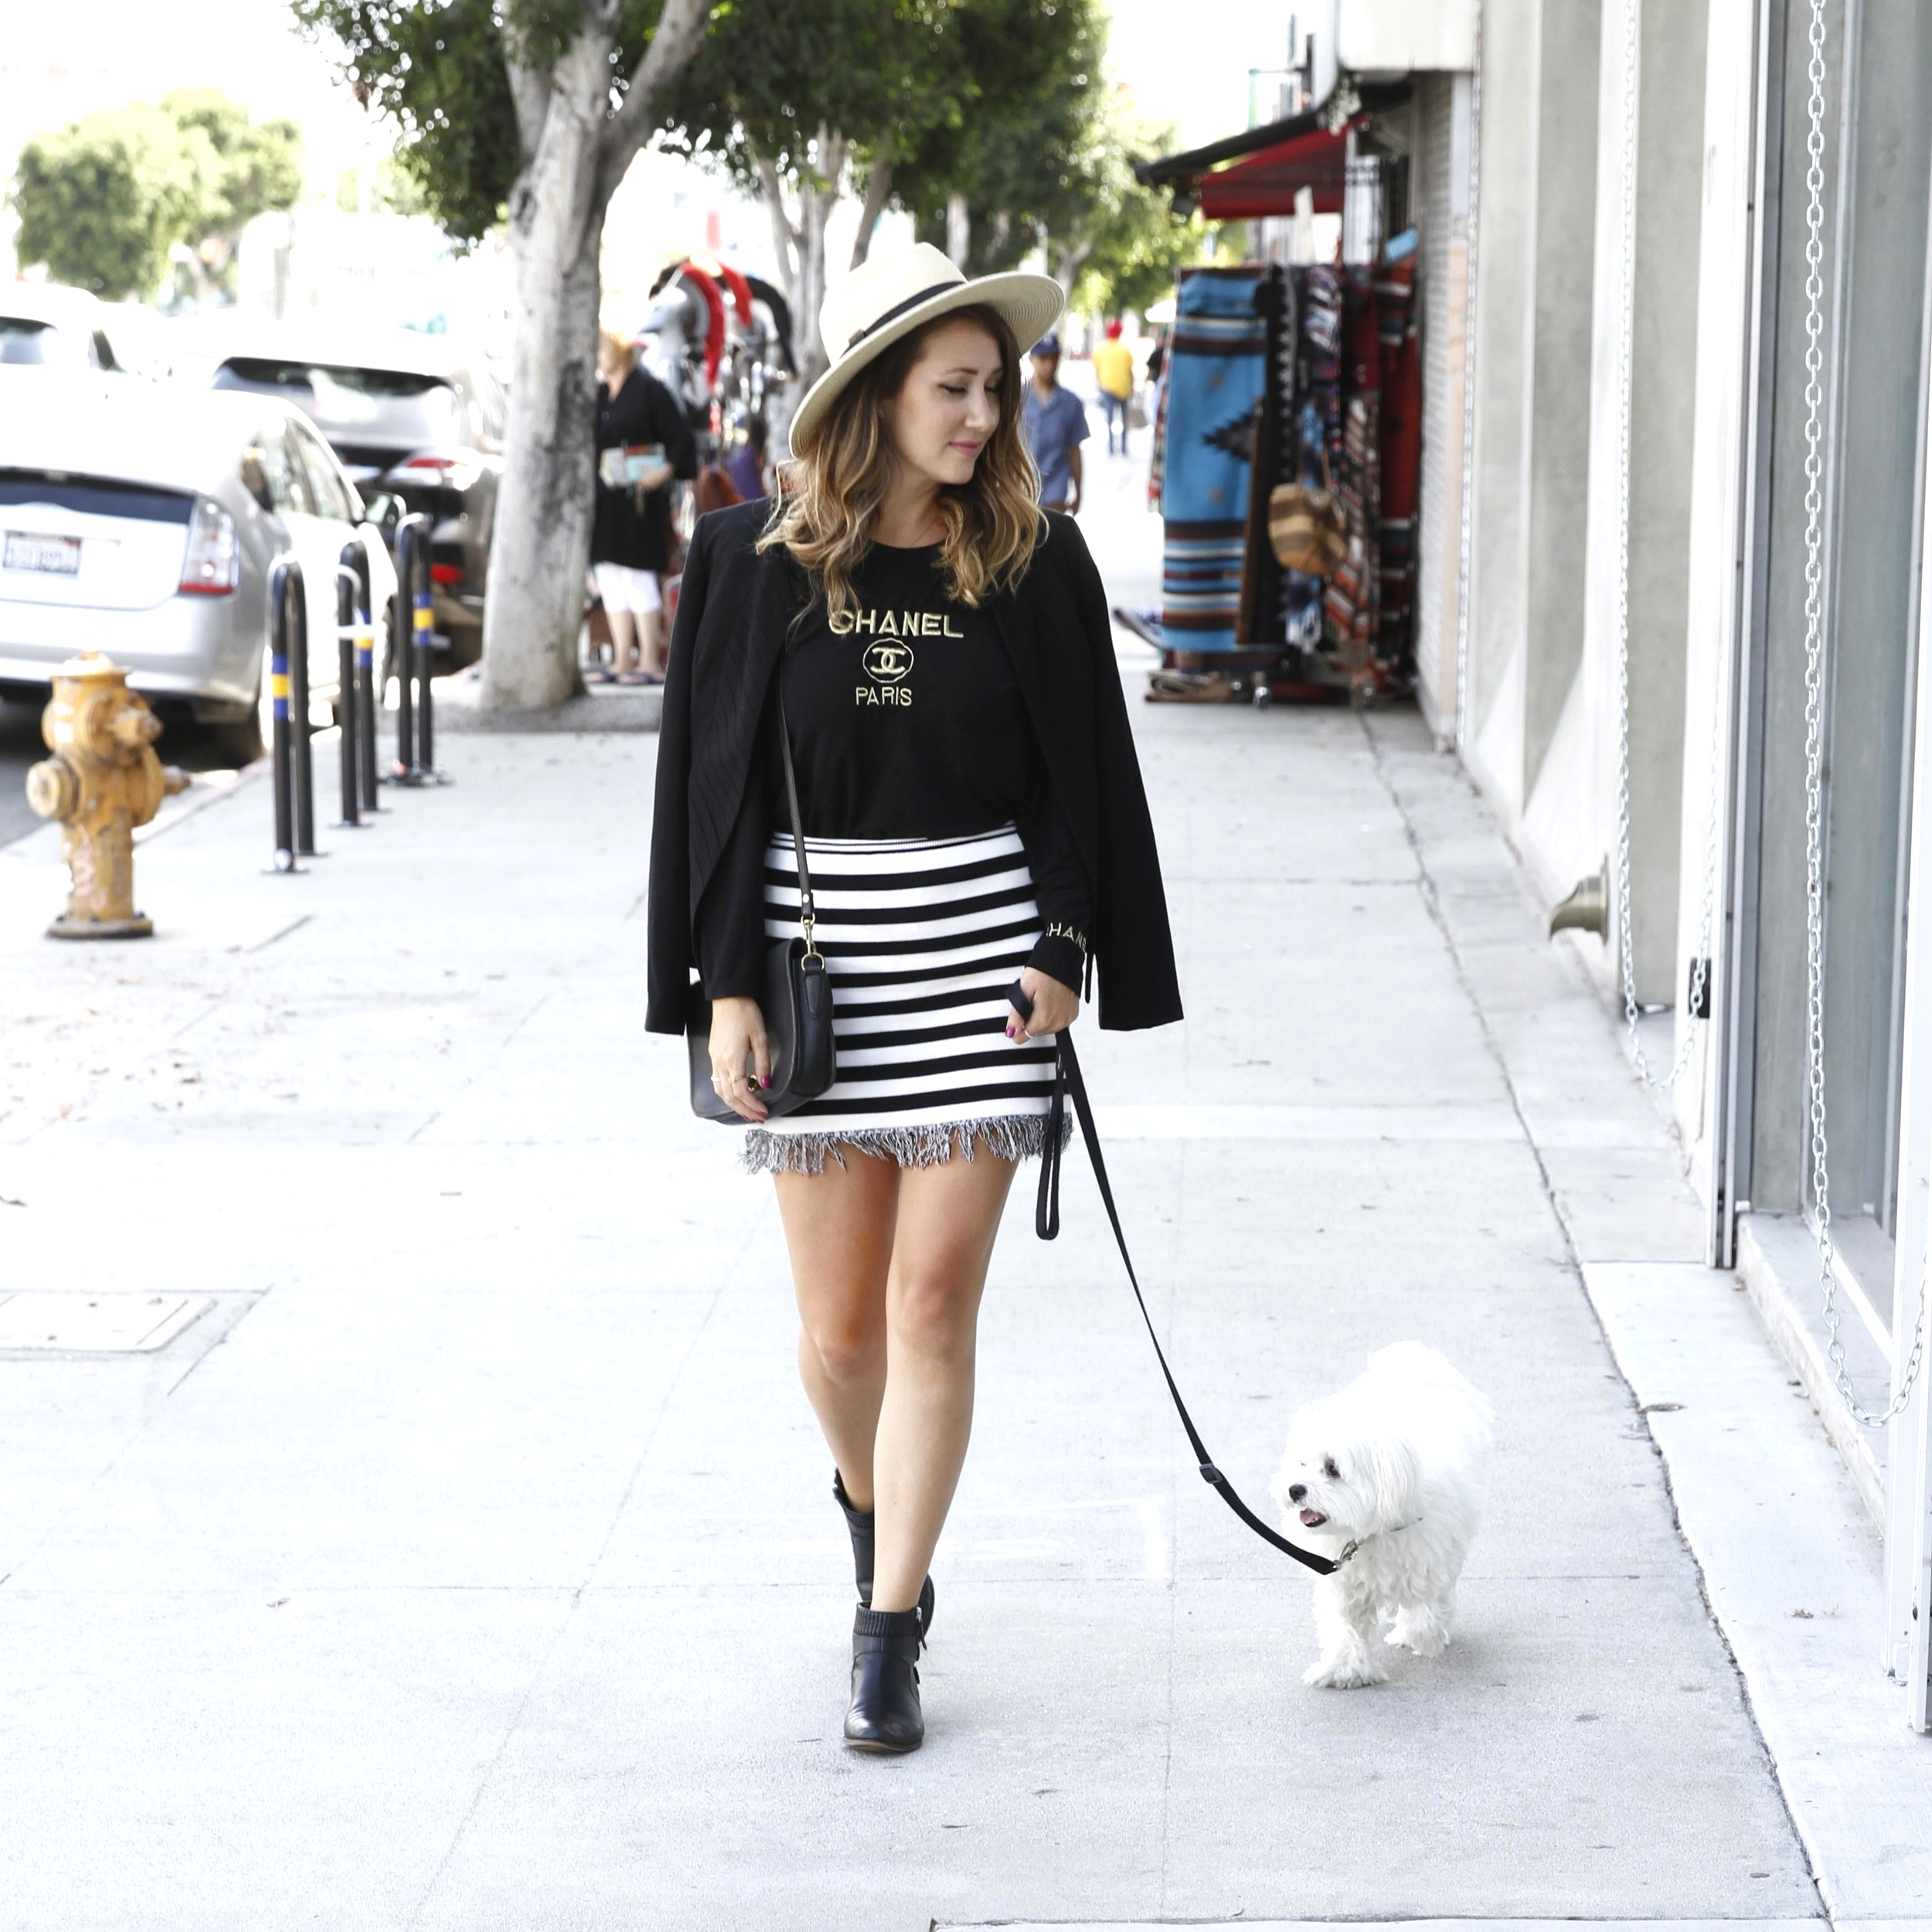 street style district la brea the style sauce ootd